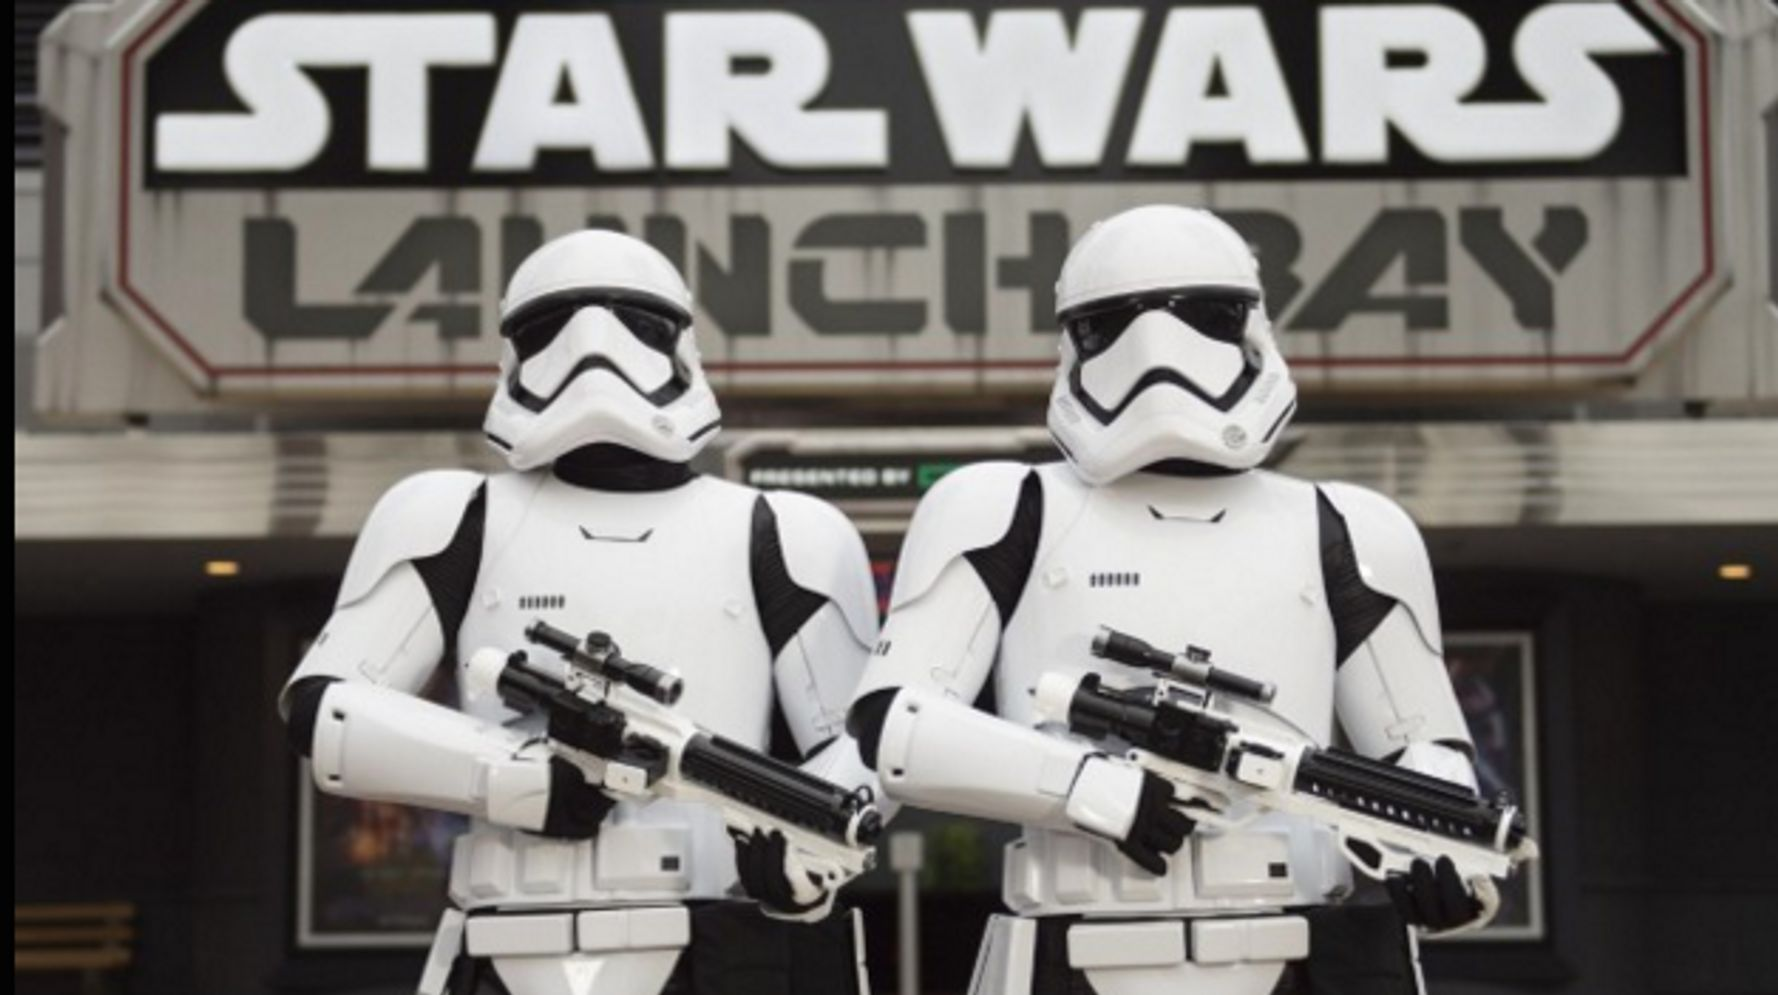 Star Wars EVERYTHING Just Opened At Disneyland And Disney World